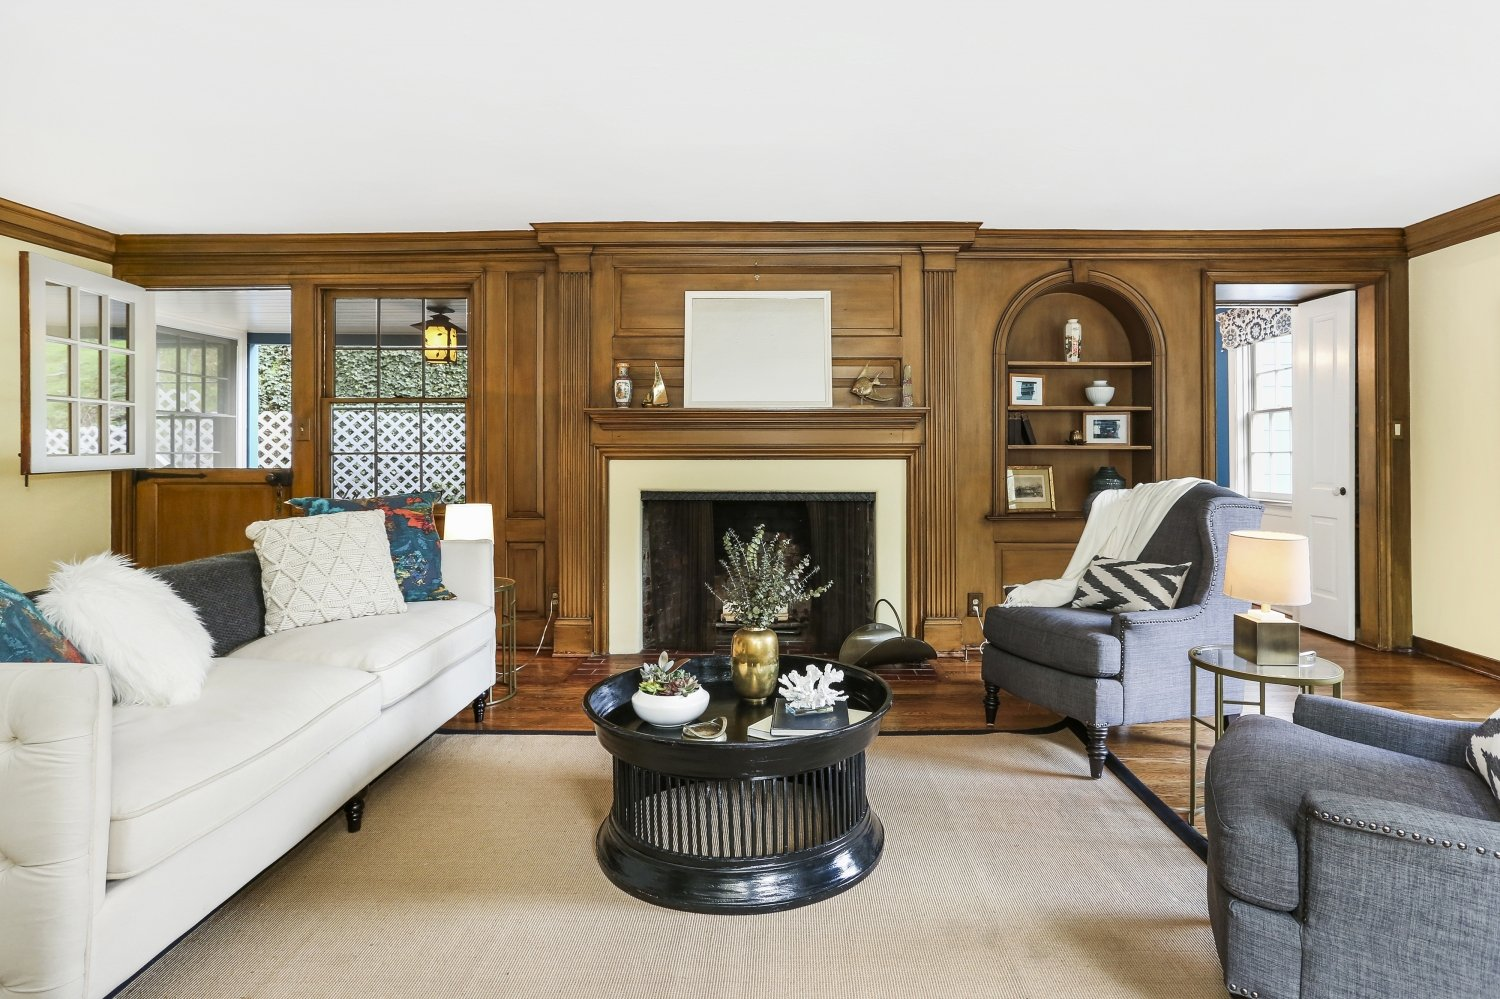 Pennsylvania Dutch Cottage Gerard Colford for sale in Glendale CA - Living Room